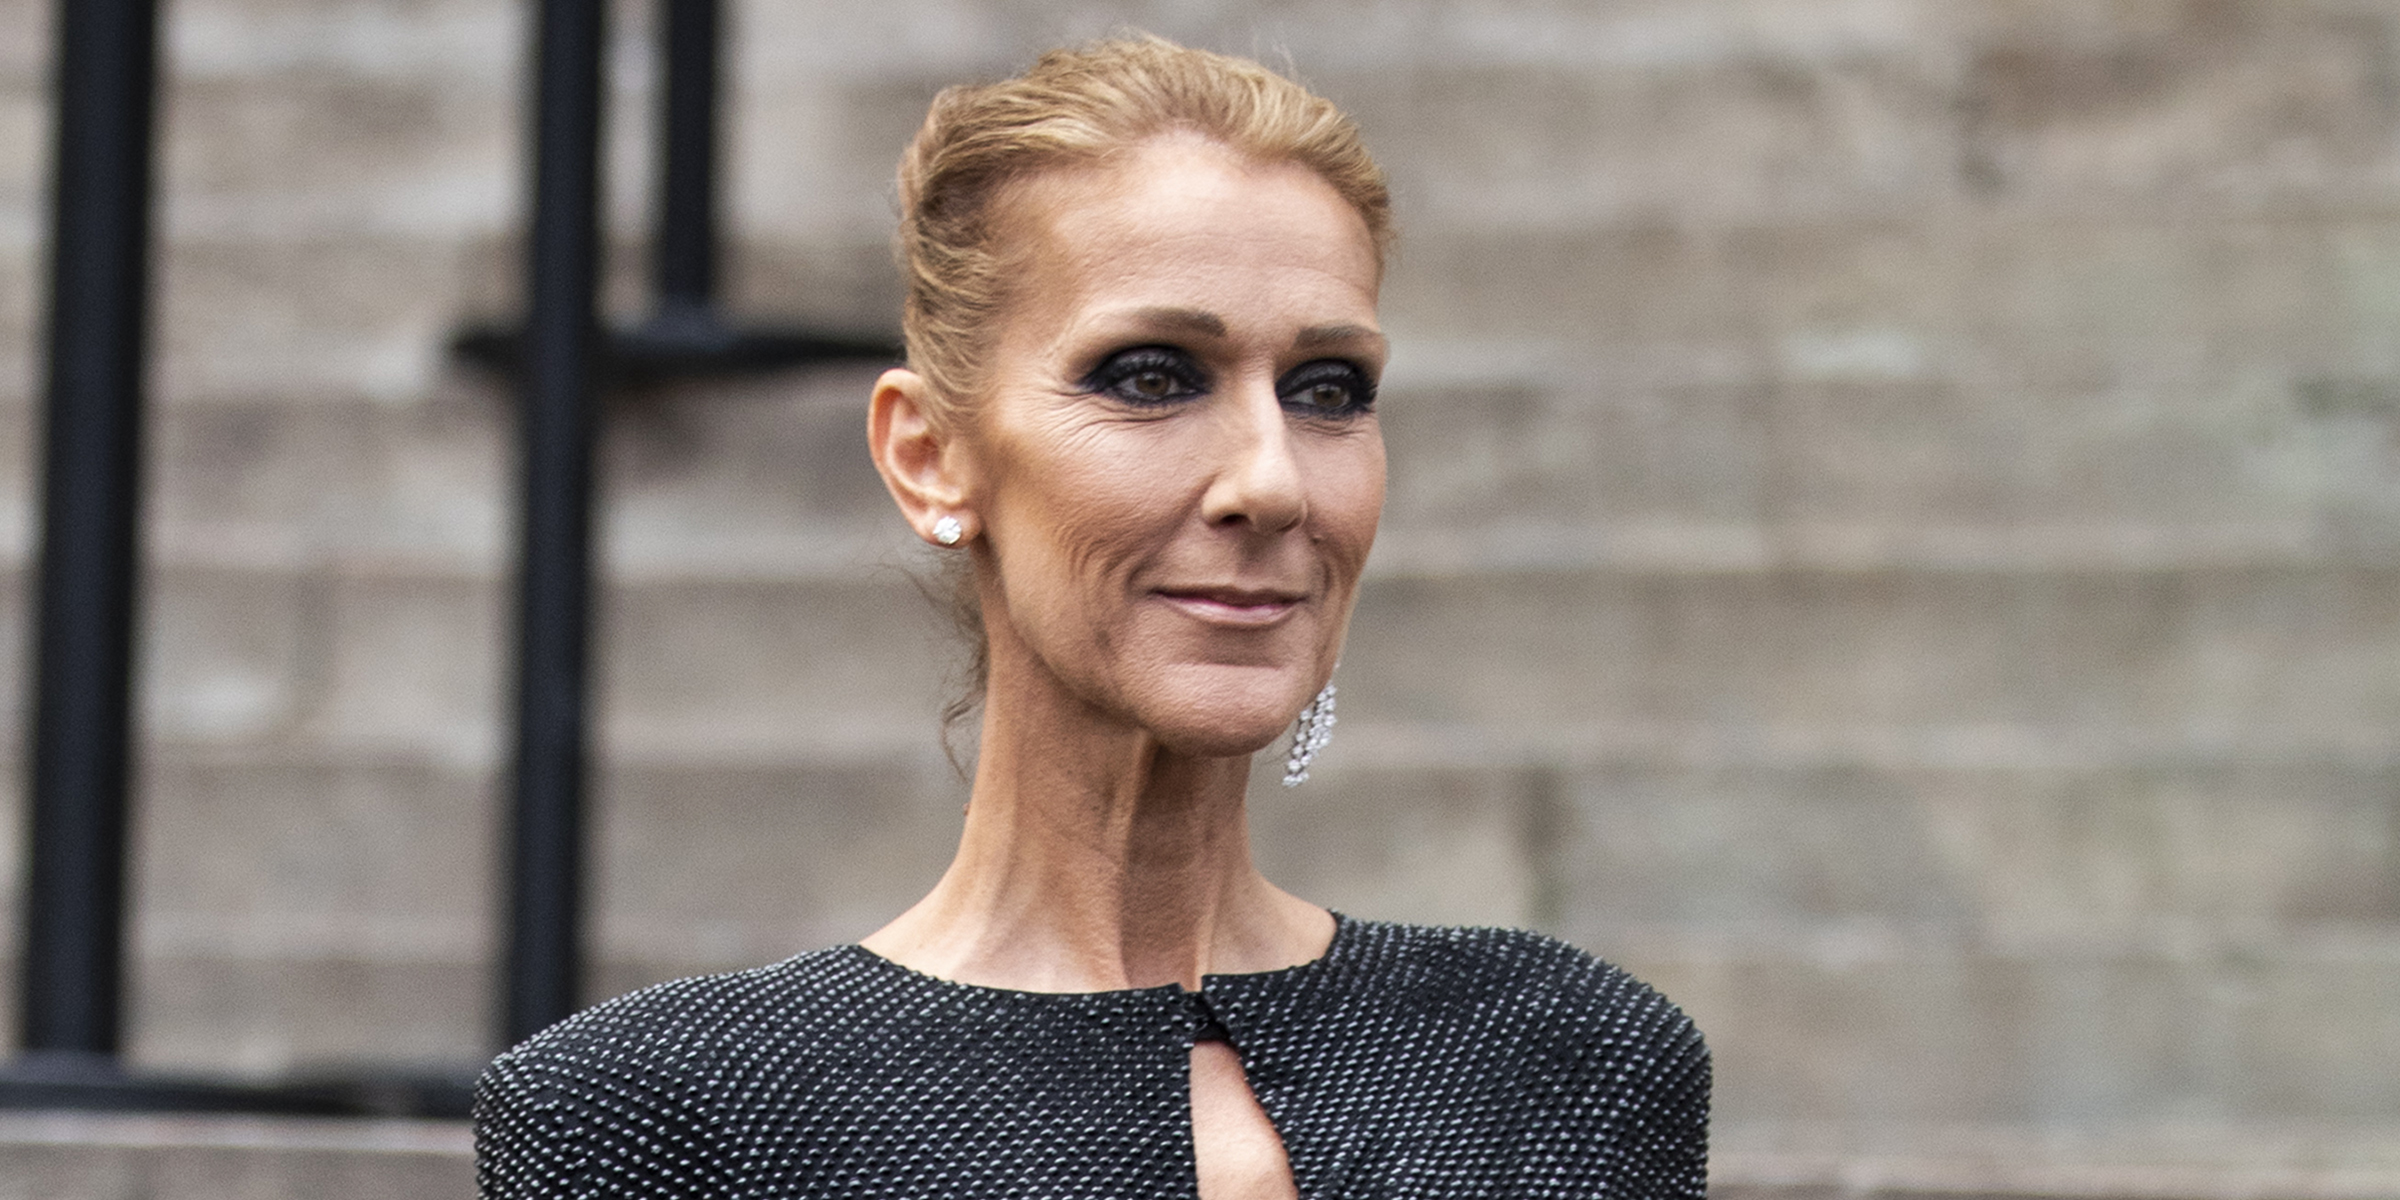 Celine Dion After Weight Loss Photo